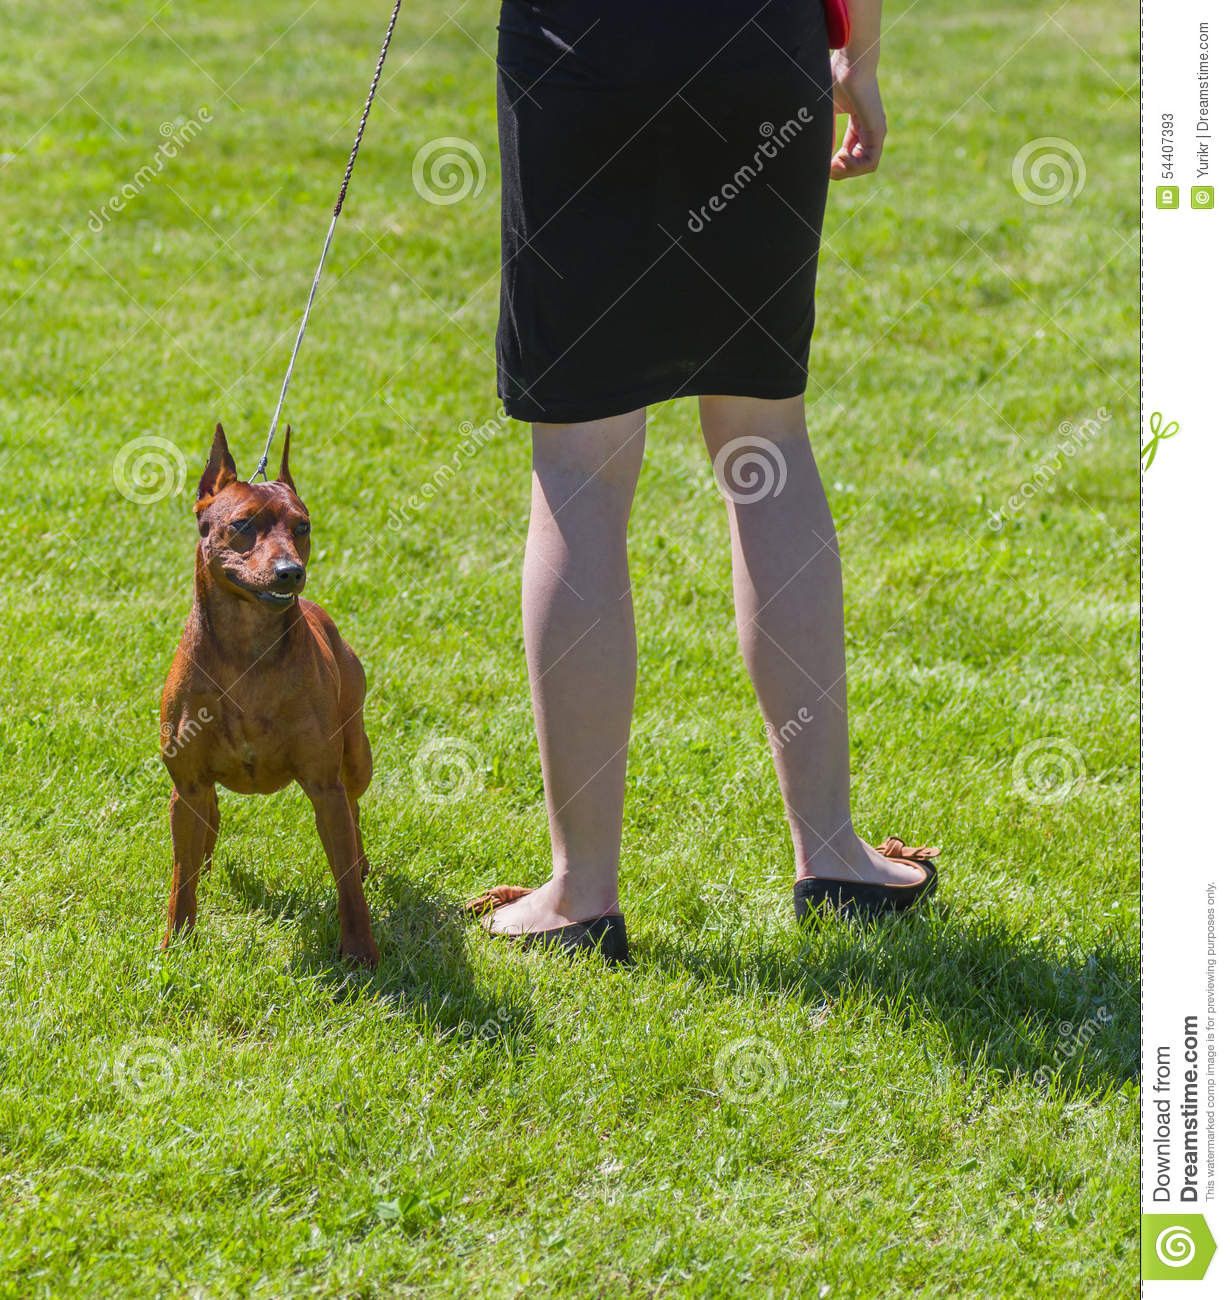 Pinscher Is Ready To Defend Master Stock Photo - Image: 54407393